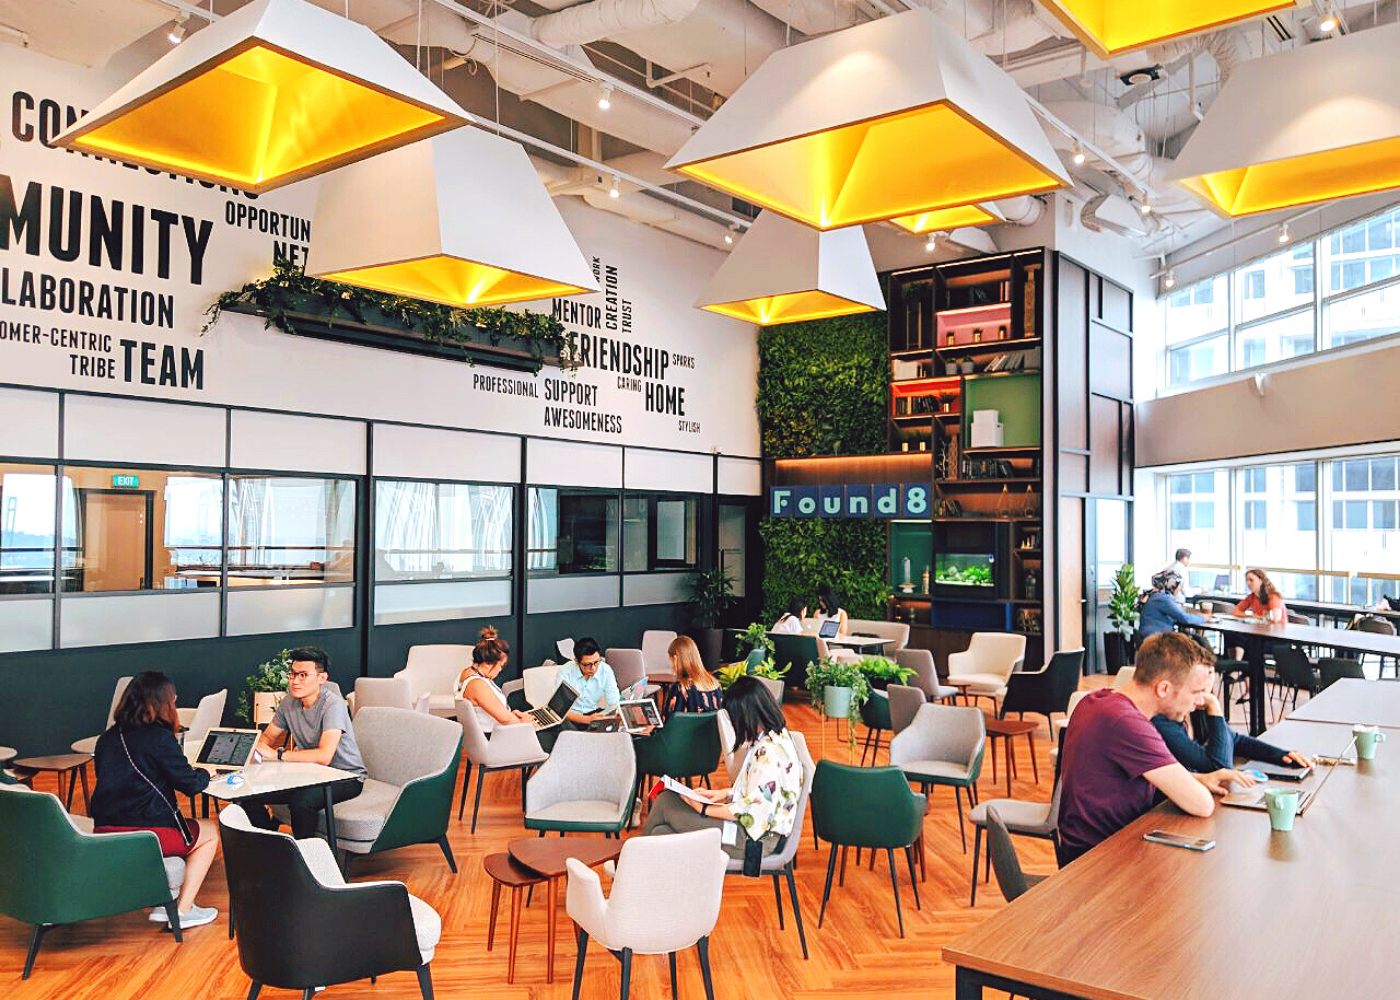 ICYMI: Team Honeycombers is part of Found8's coworking community and here's why we love it